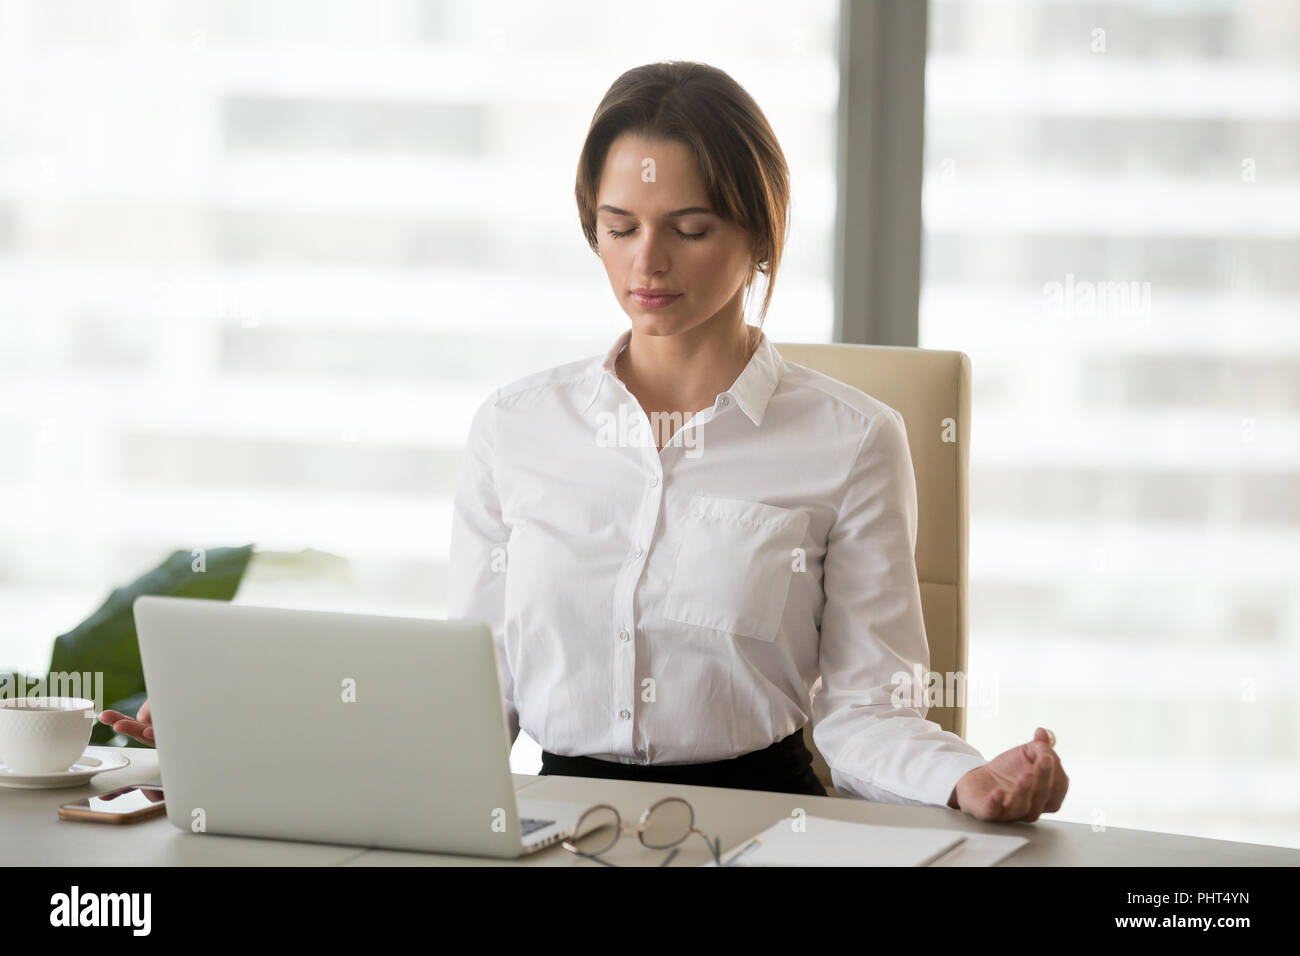 Mindful millennial woman meditating in office to reduce work str - Stock Image